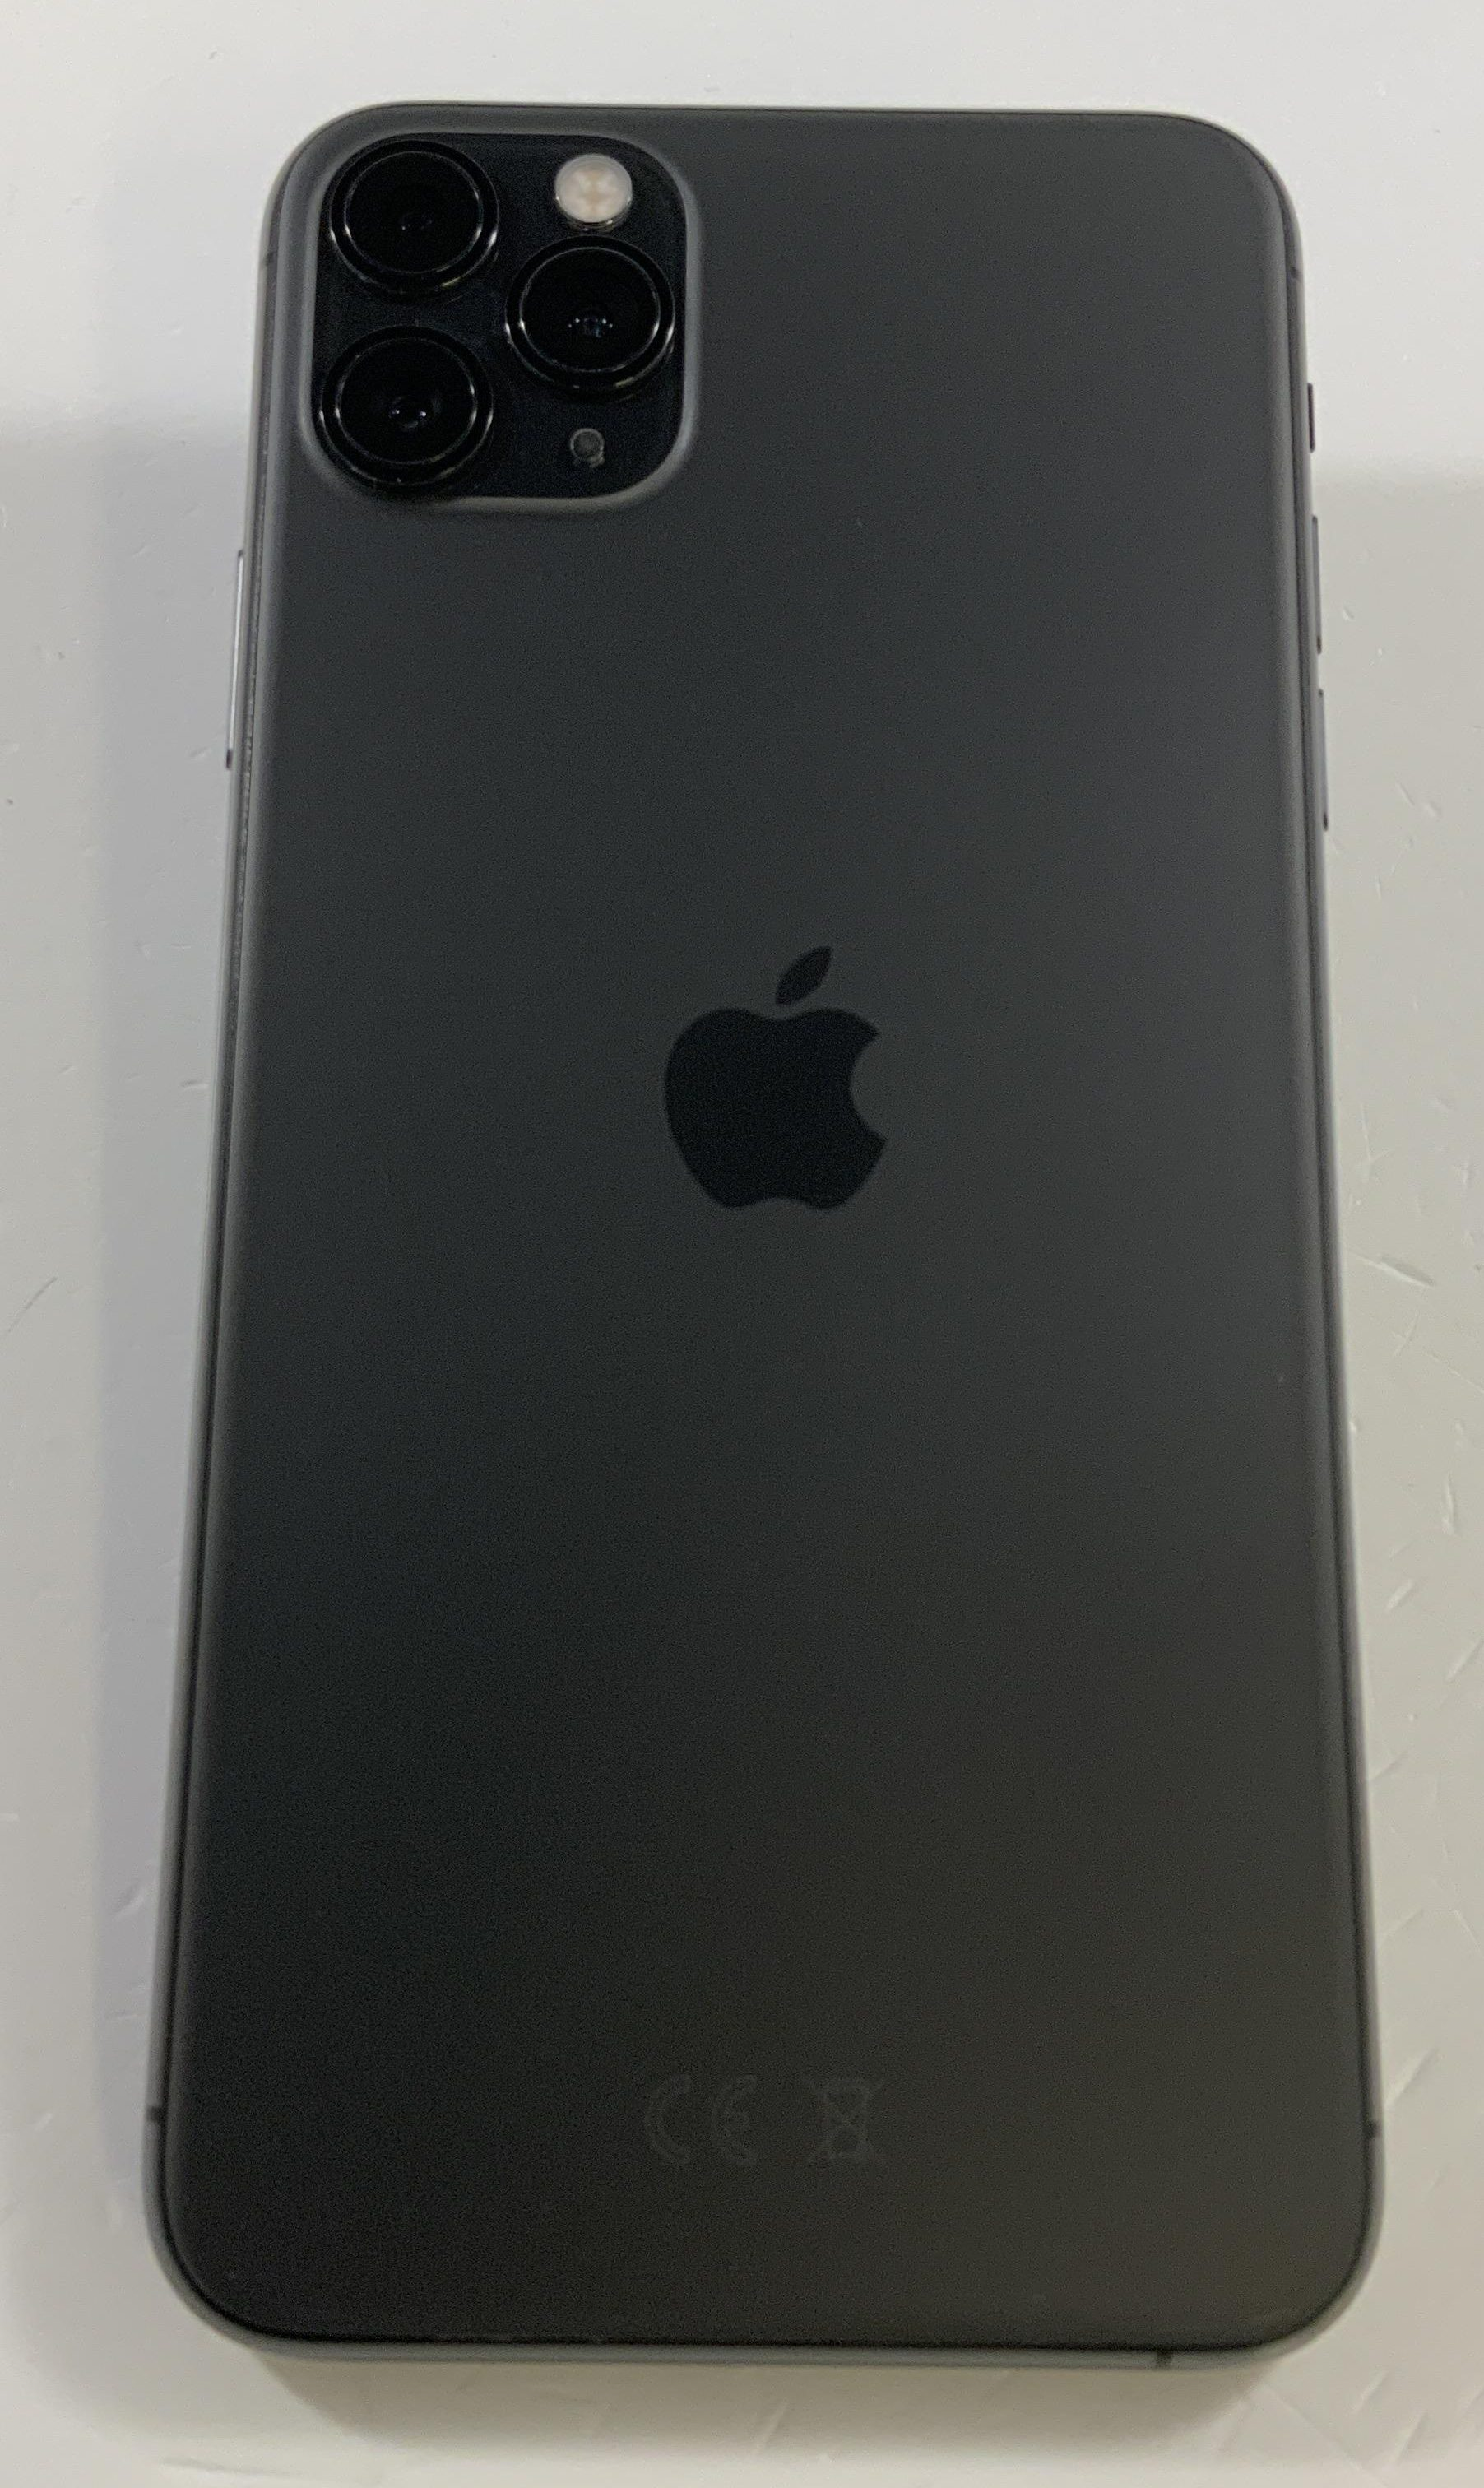 iPhone 11 Pro Max 512GB, 512GB, Space Gray, image 2